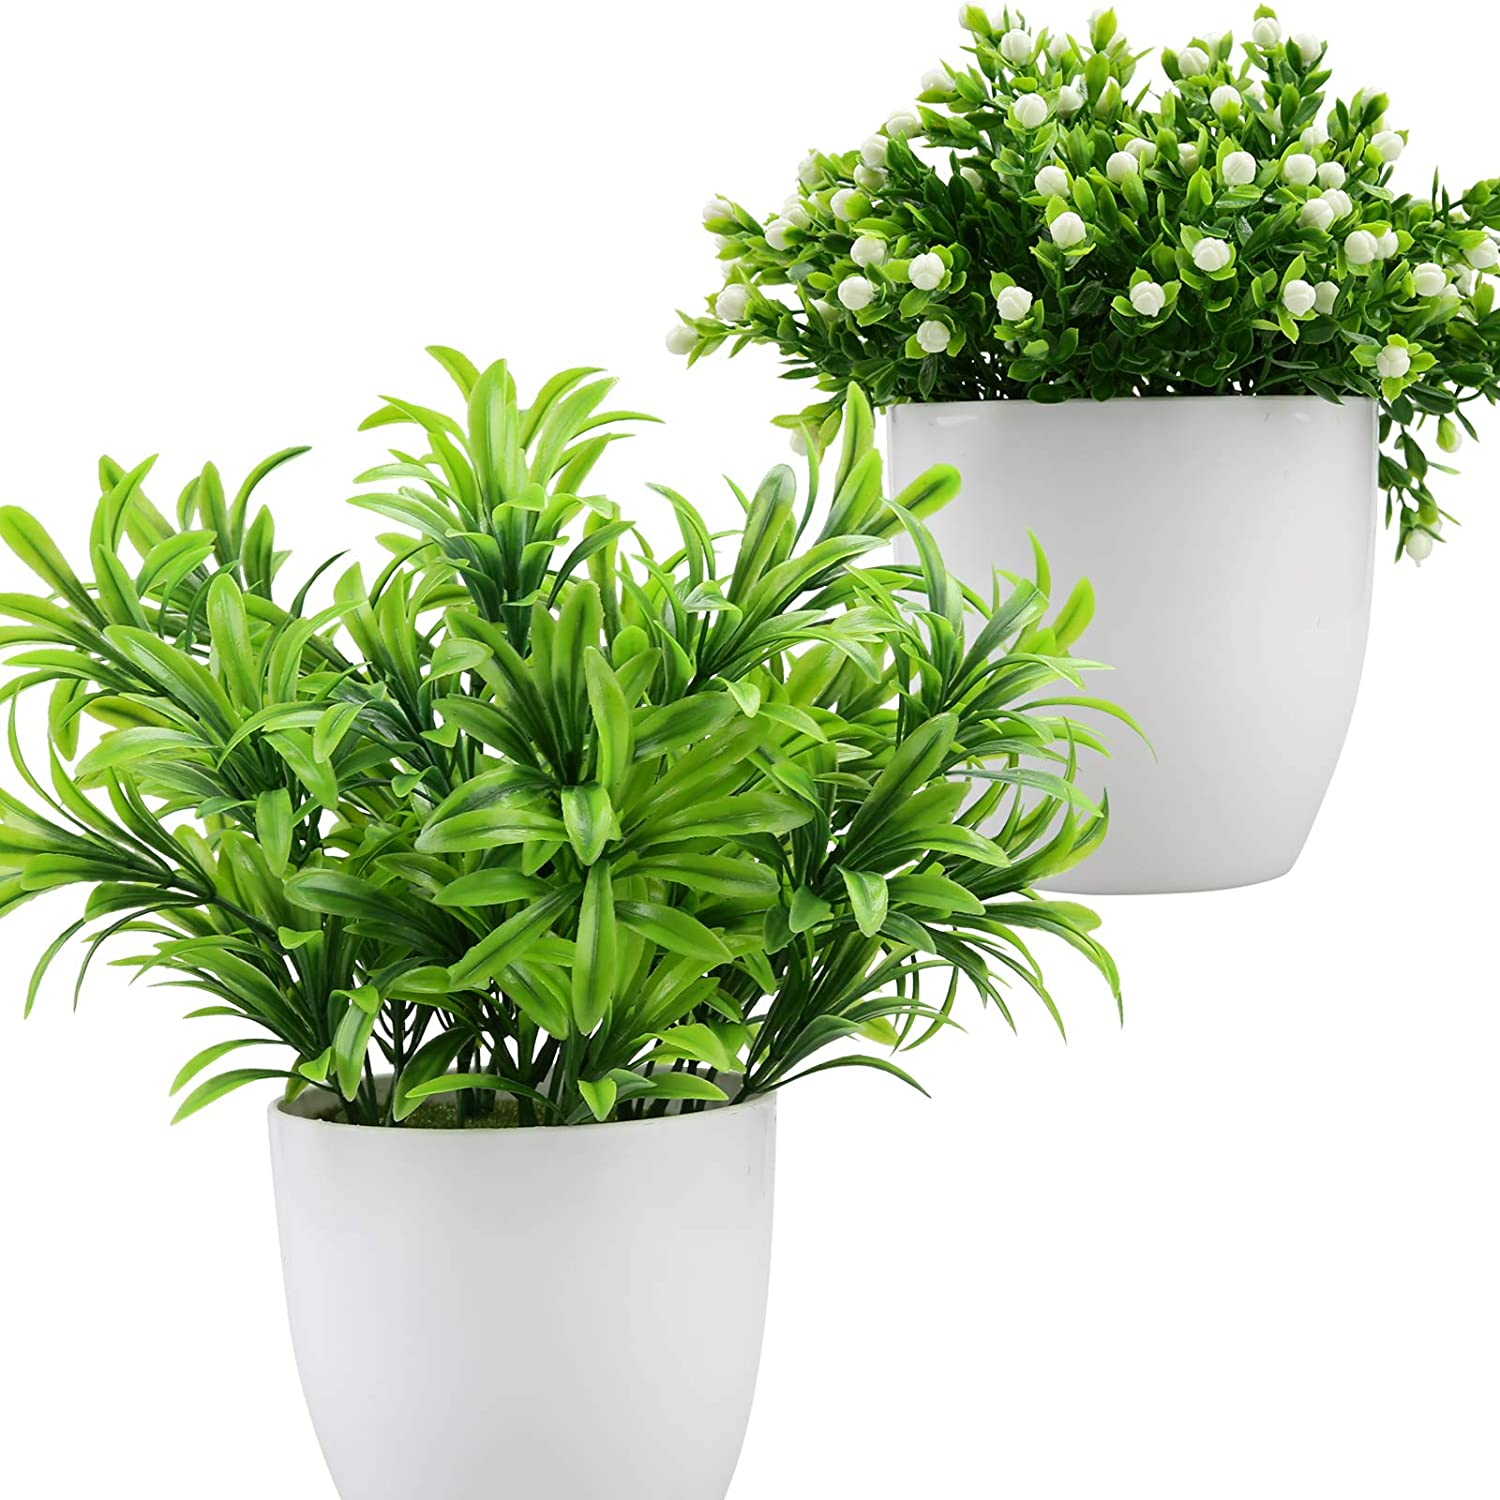 Summer flower 2 Pack Artificial Potted Plants with White Flowers ,Fake Eucalyptus Plant in pots,Faux Plants Greenery for Home Decor, Indoor, Office, Desk, Wedding Decoration